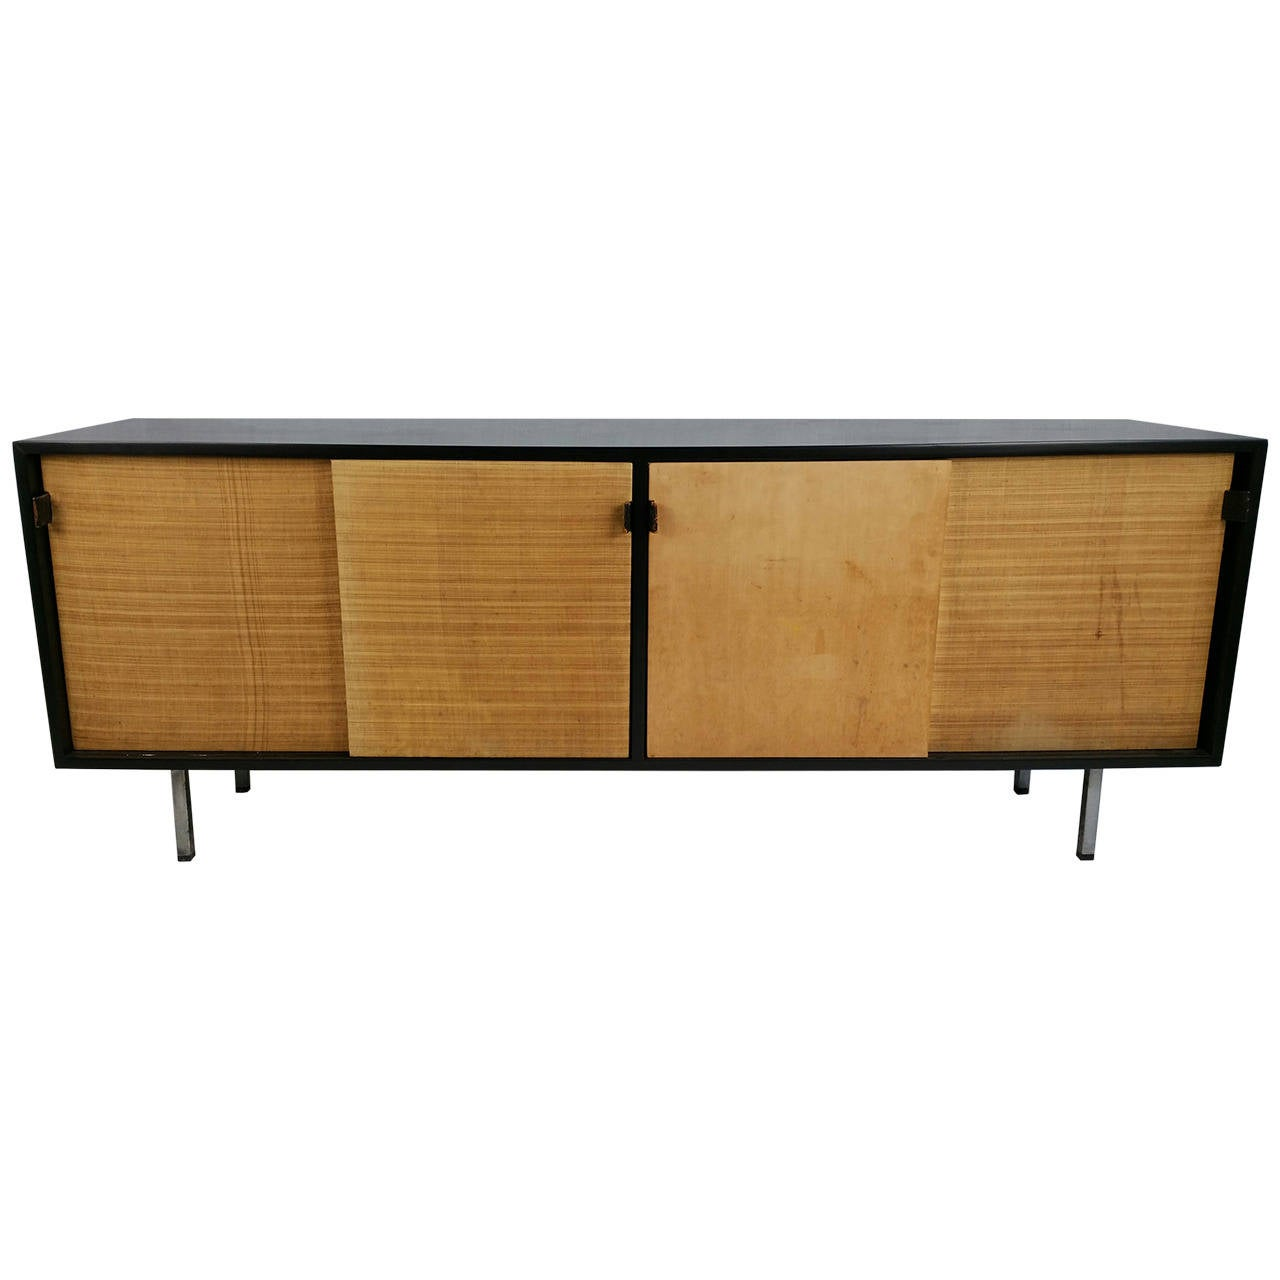 Florence Knoll Black Lacquer and Grasscloth Credenza,,,Knoll Manufacturing 1